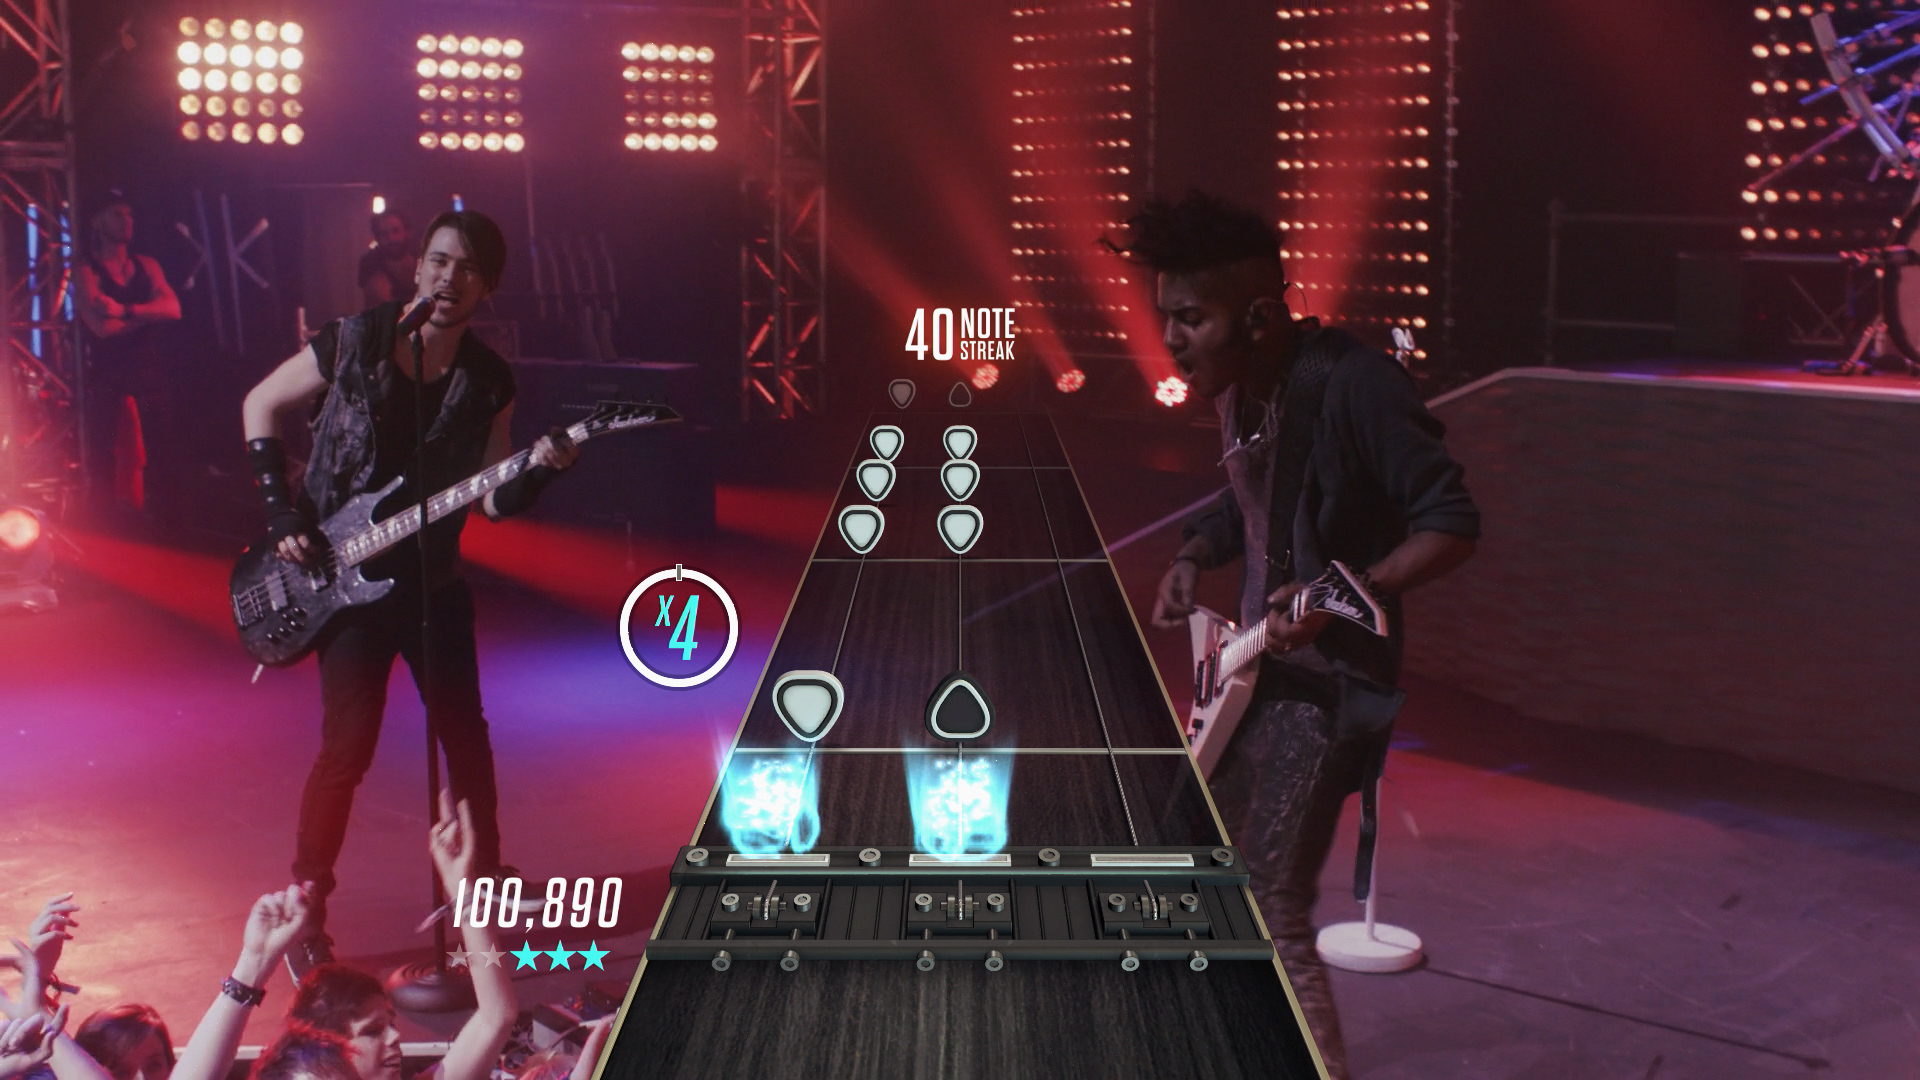 Guitar Hero Live note track